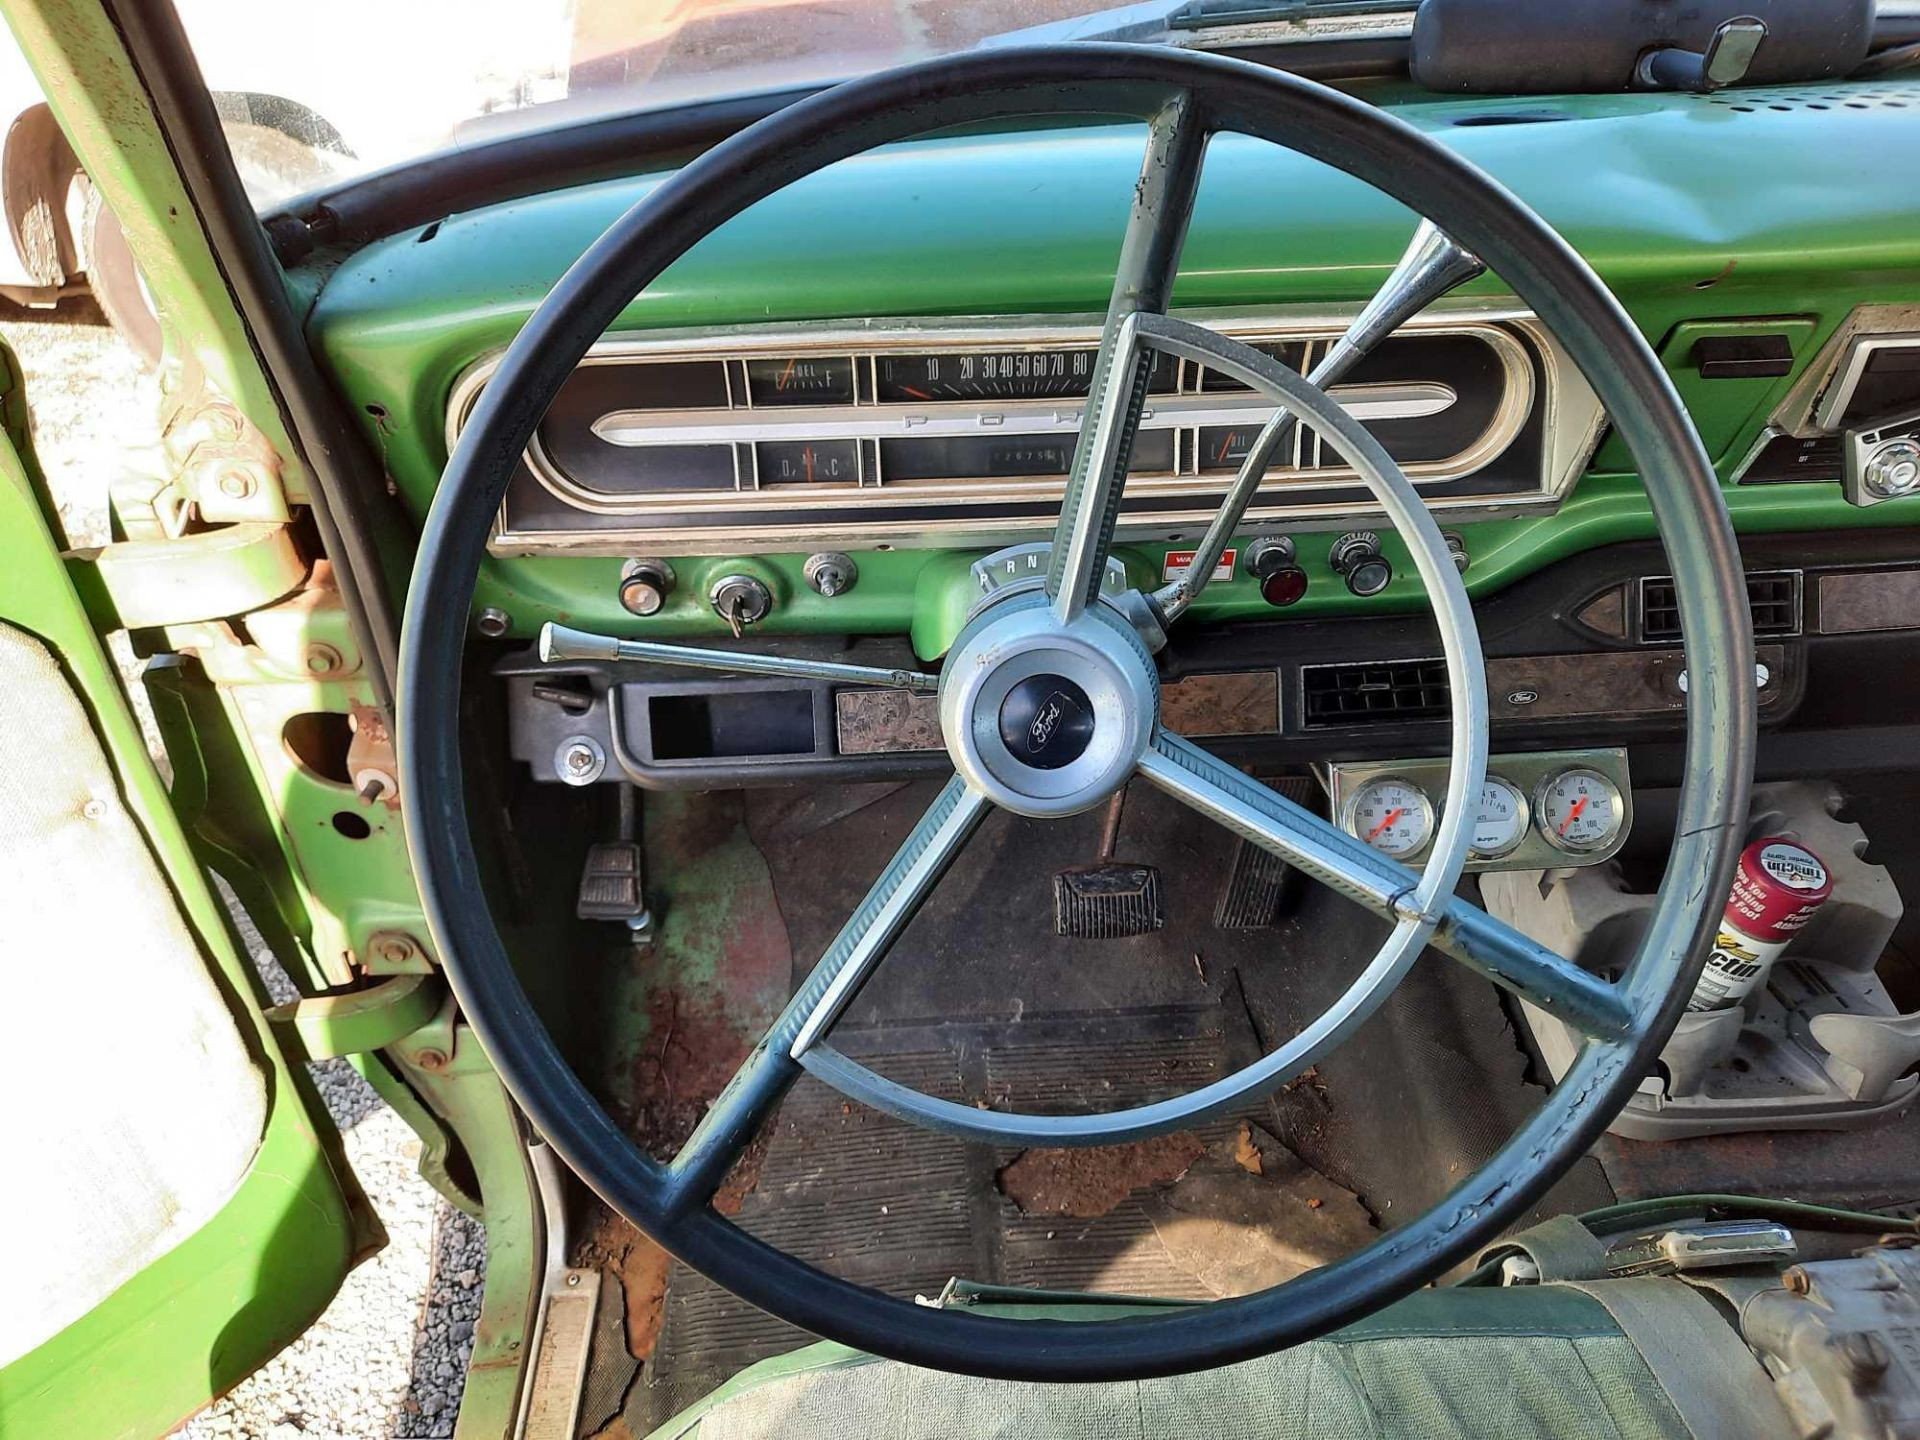 1972 FORD CREW CAB 350 PICK UP TRUCK (INOPERABLE) - Image 6 of 15